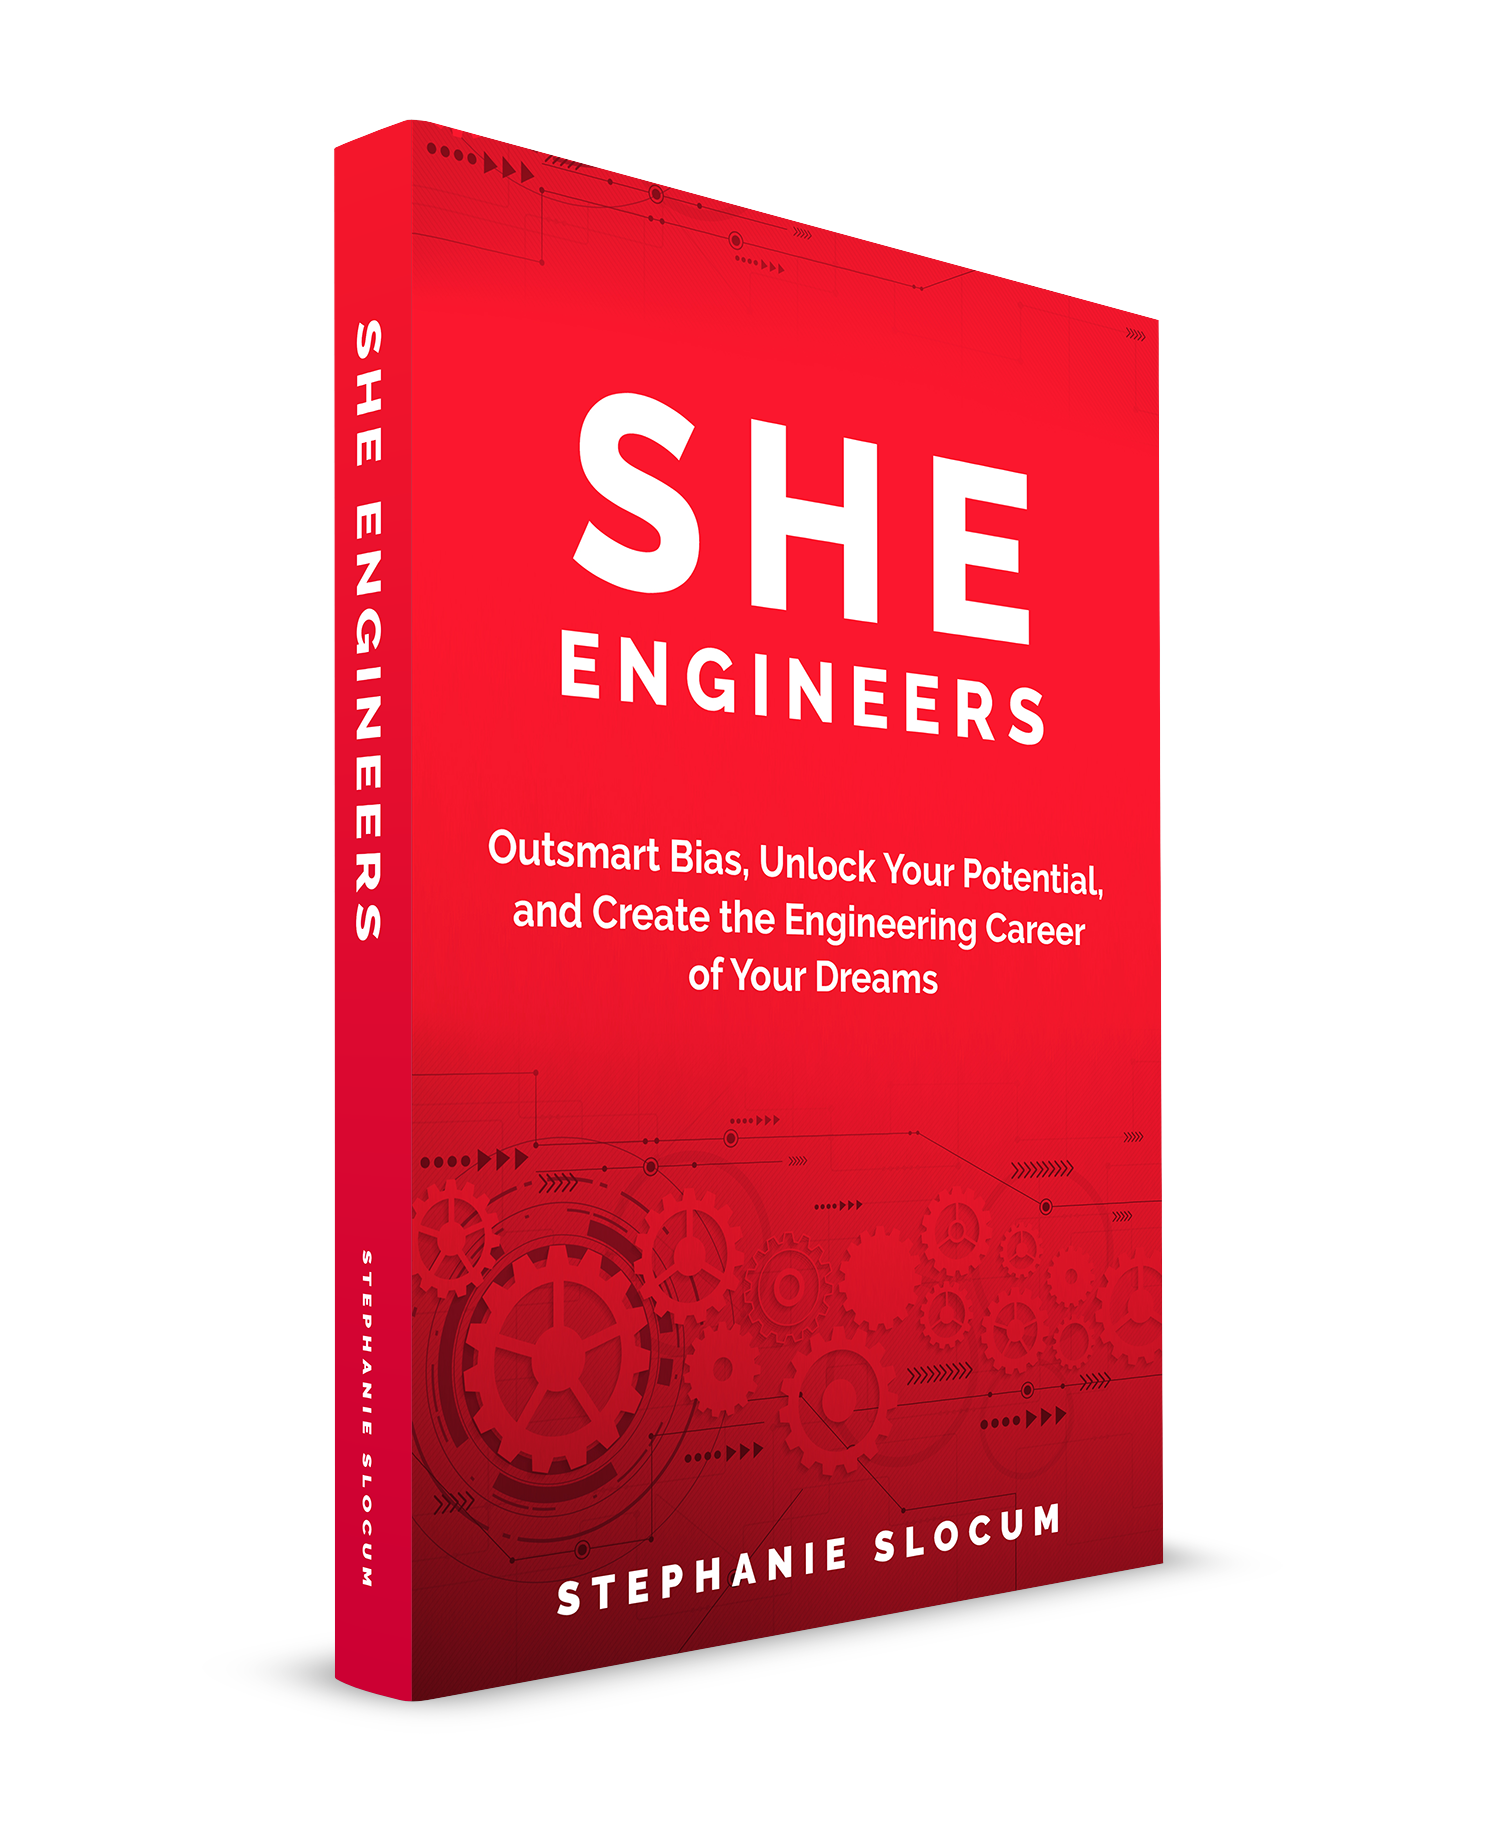 She Engineers - Imagine a life where YOU choose your own career path. You love what you do. You are an influencer, a go-to person at your company and in your field. You aren't working ridiculous hours. You have a life outside of work. You may even have a couple of young children if you so choose, while still enjoying a well-paying, impactful career in engineering.Sound like a pipe dream?It's not. This book will show you how.As a fifteen-year engineering industry veteran and mom of 3 daughters, Stephanie uses a conversational and down-to-earth approach to teach you how to succeed as a female engineer.